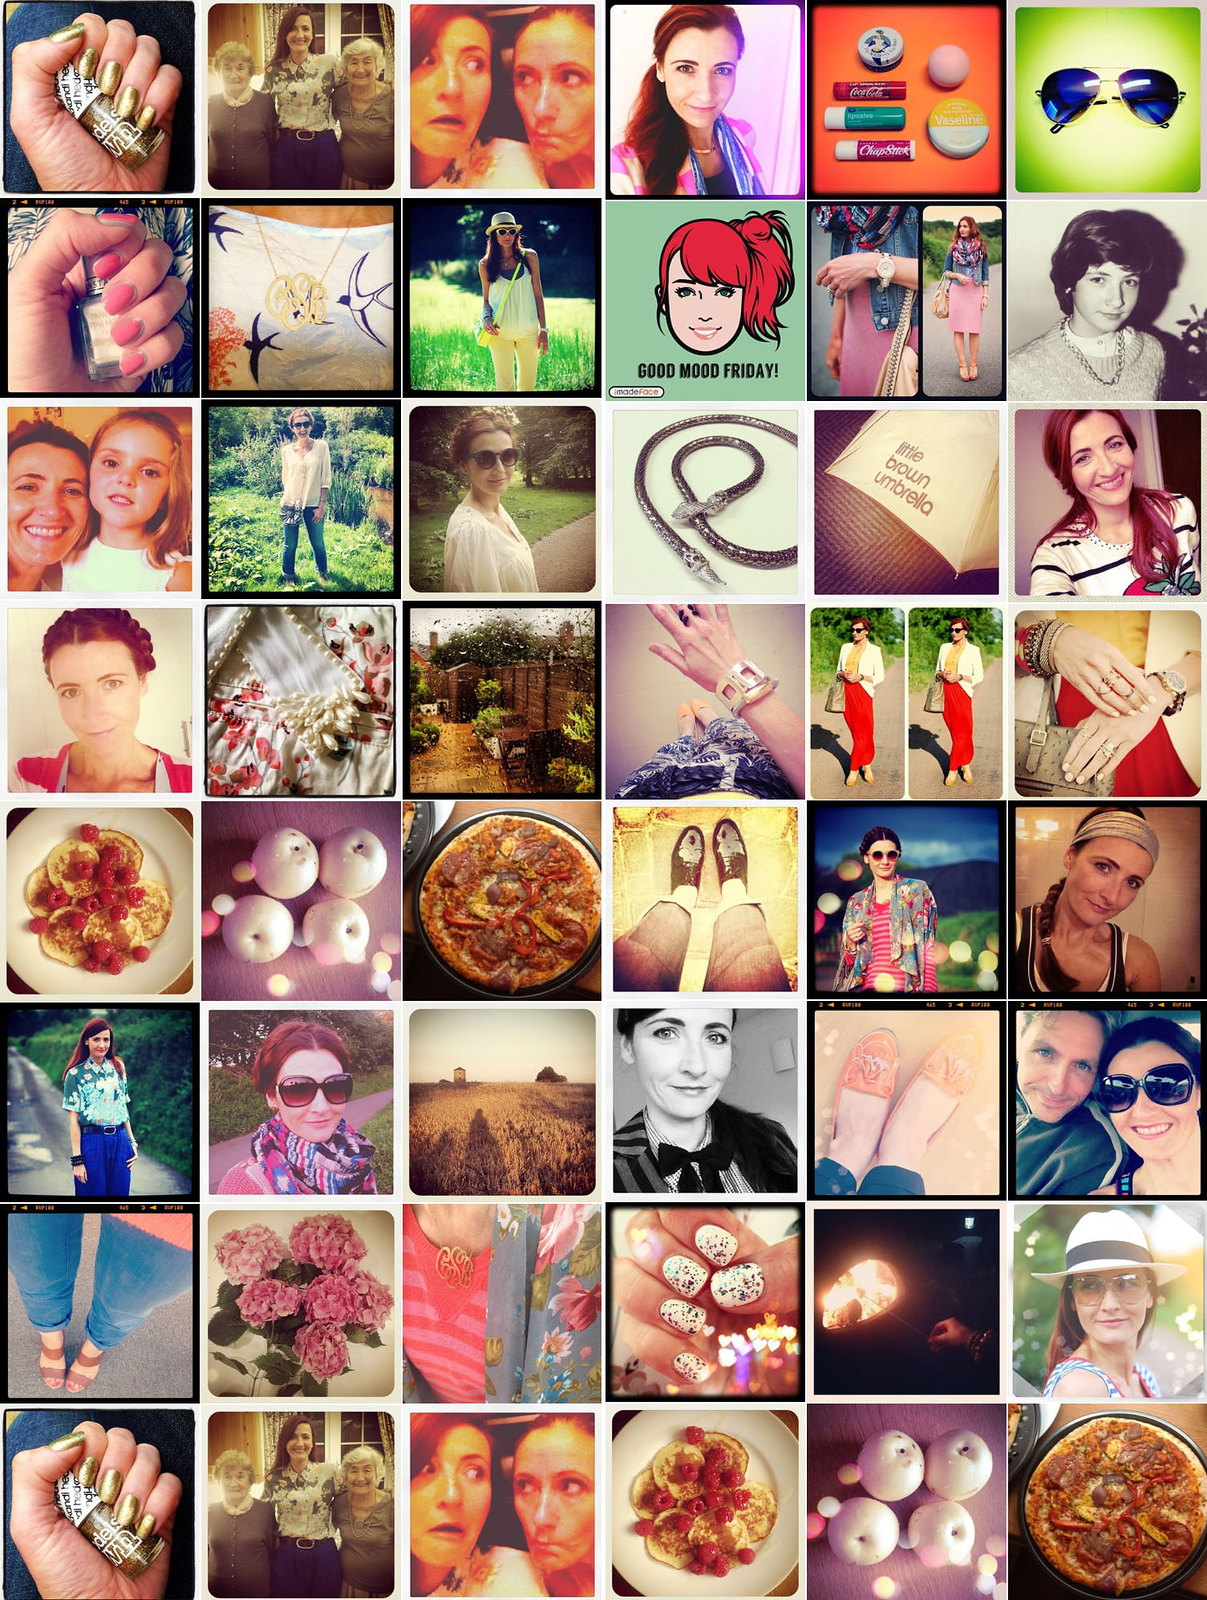 Instagram Before and Afters: An Amusing Look Back at My Old Instagram Posts